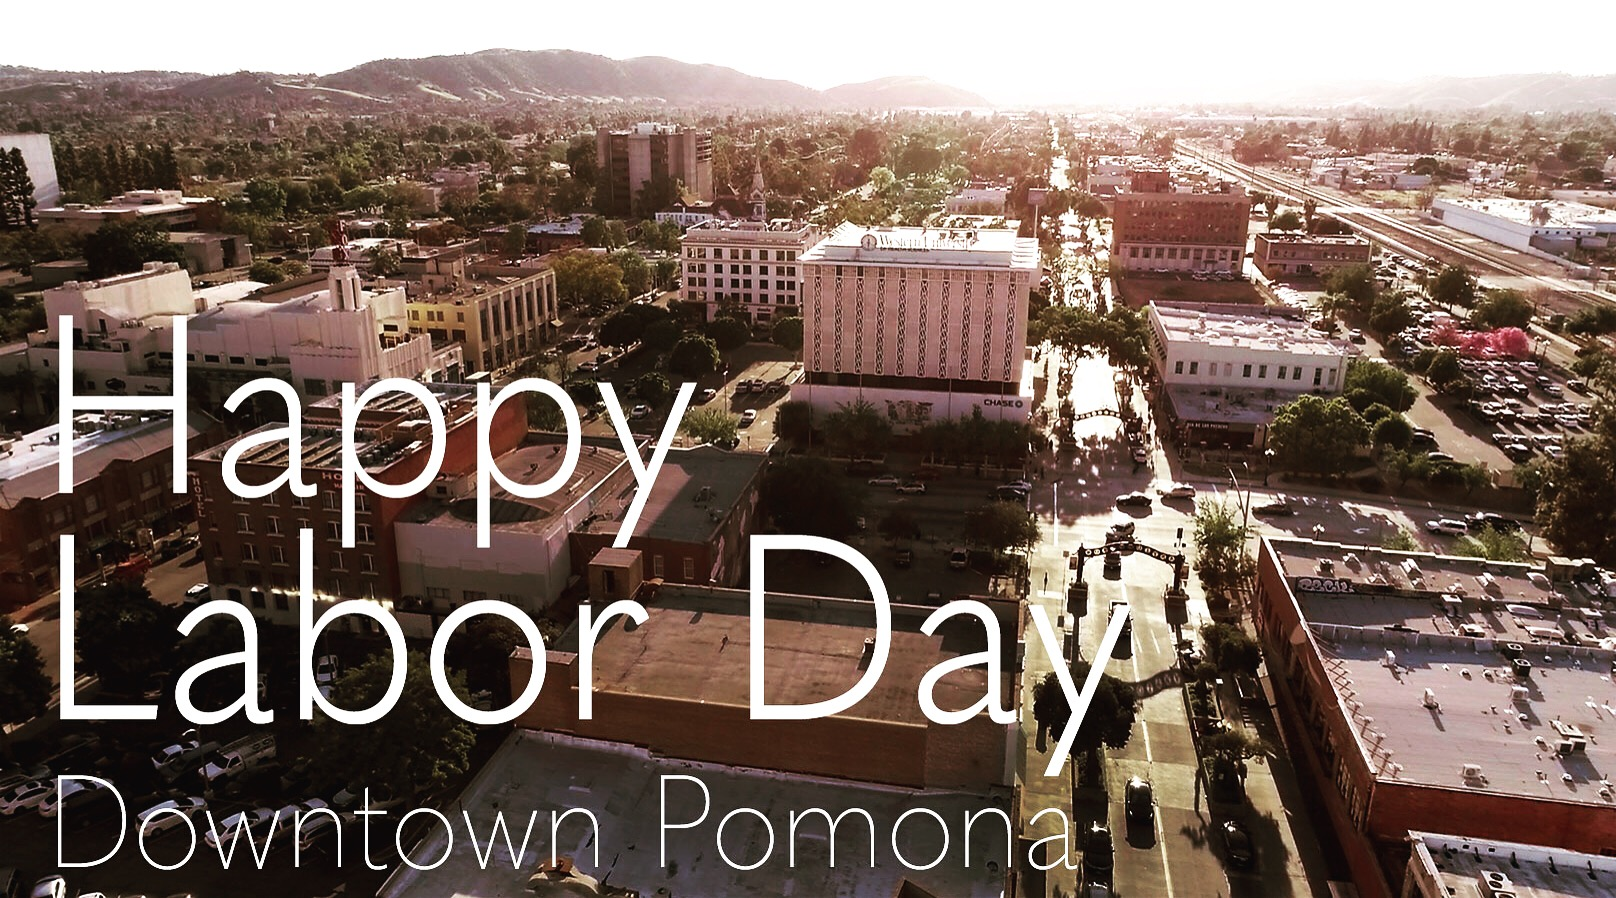 Downtown Pomona wishes all you hard workers out there a Happy Labor Day .